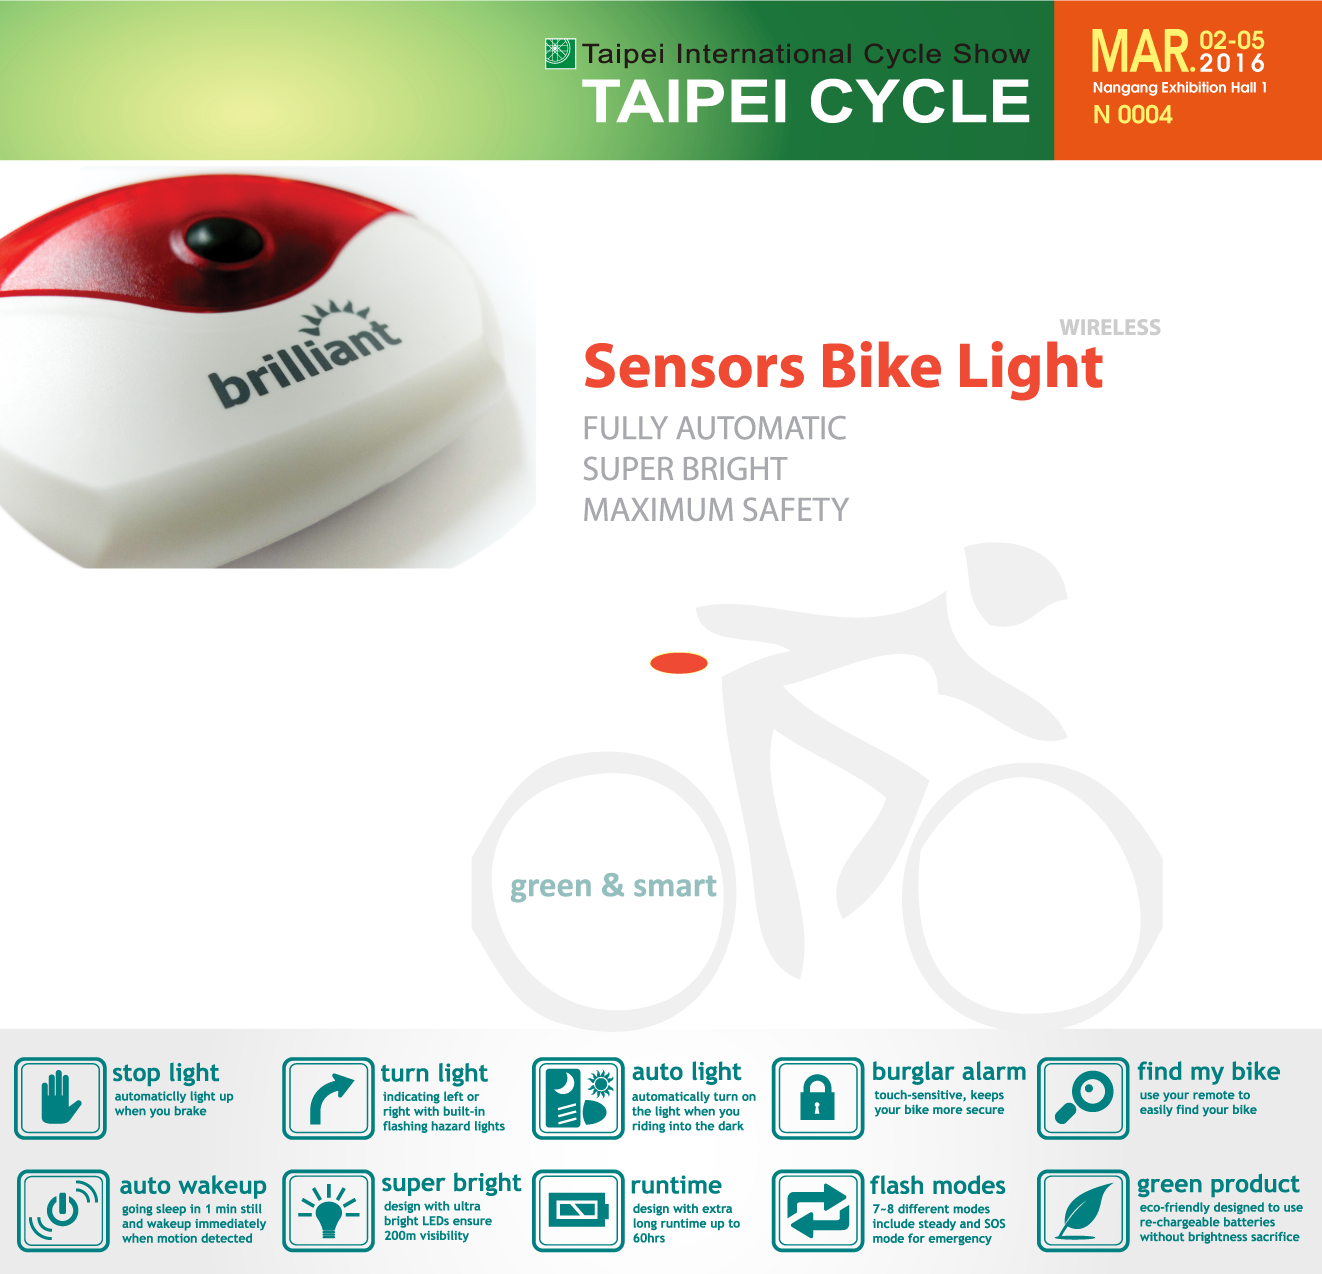 brilliant sensor bike light @ Taipei Cycle Show